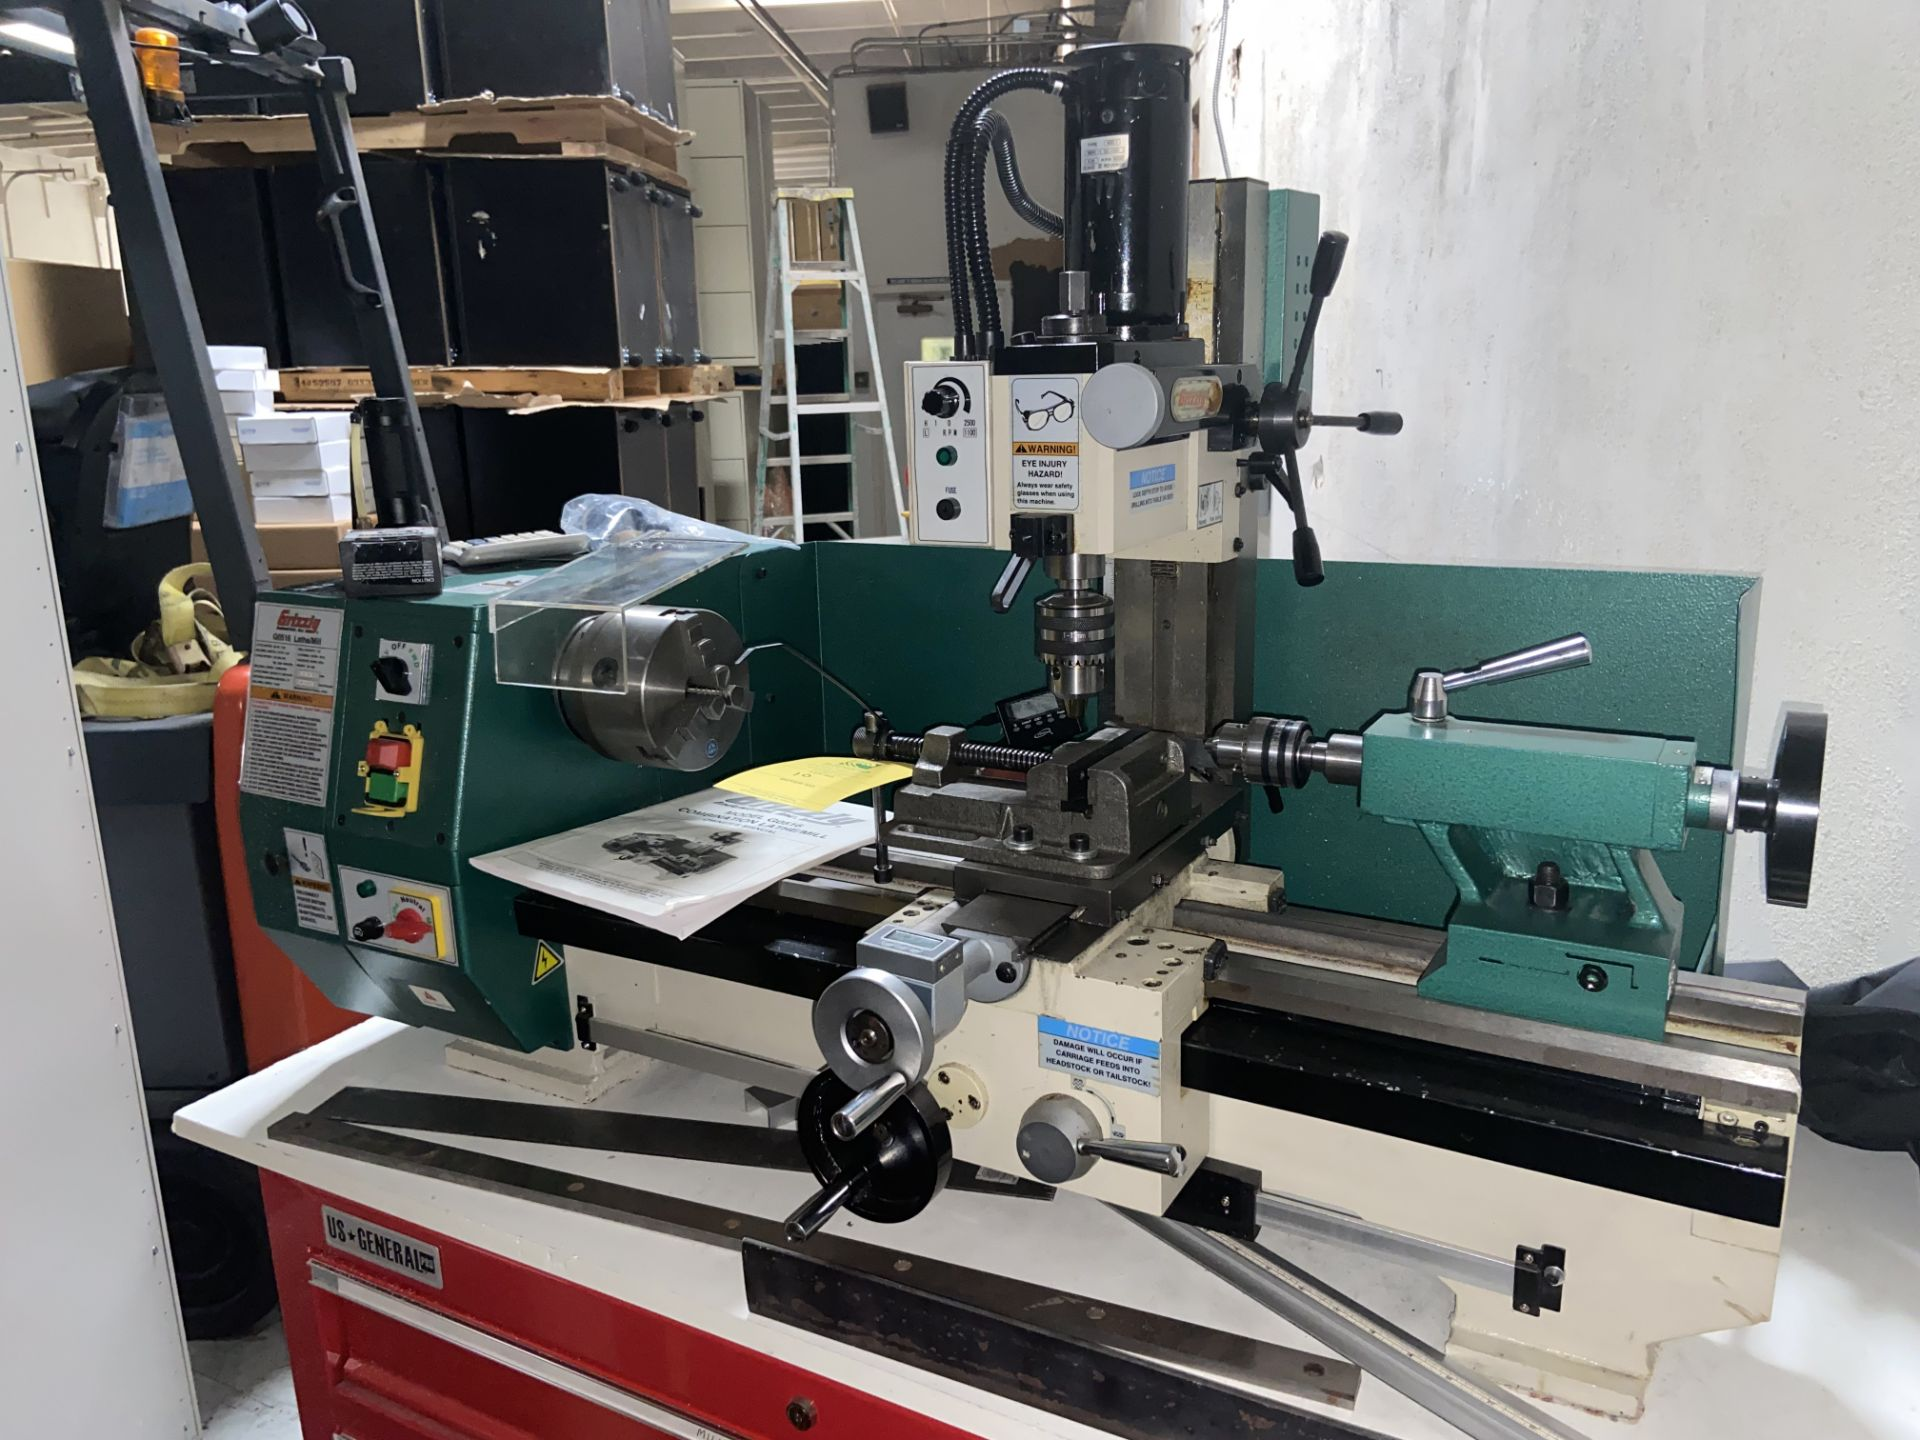 Grizzly Industrial Lathe/Mill, Model# G0516, Serial# MO120045, Lathe Motor 3/4 hp, 110V, 150-2400 - Image 4 of 12